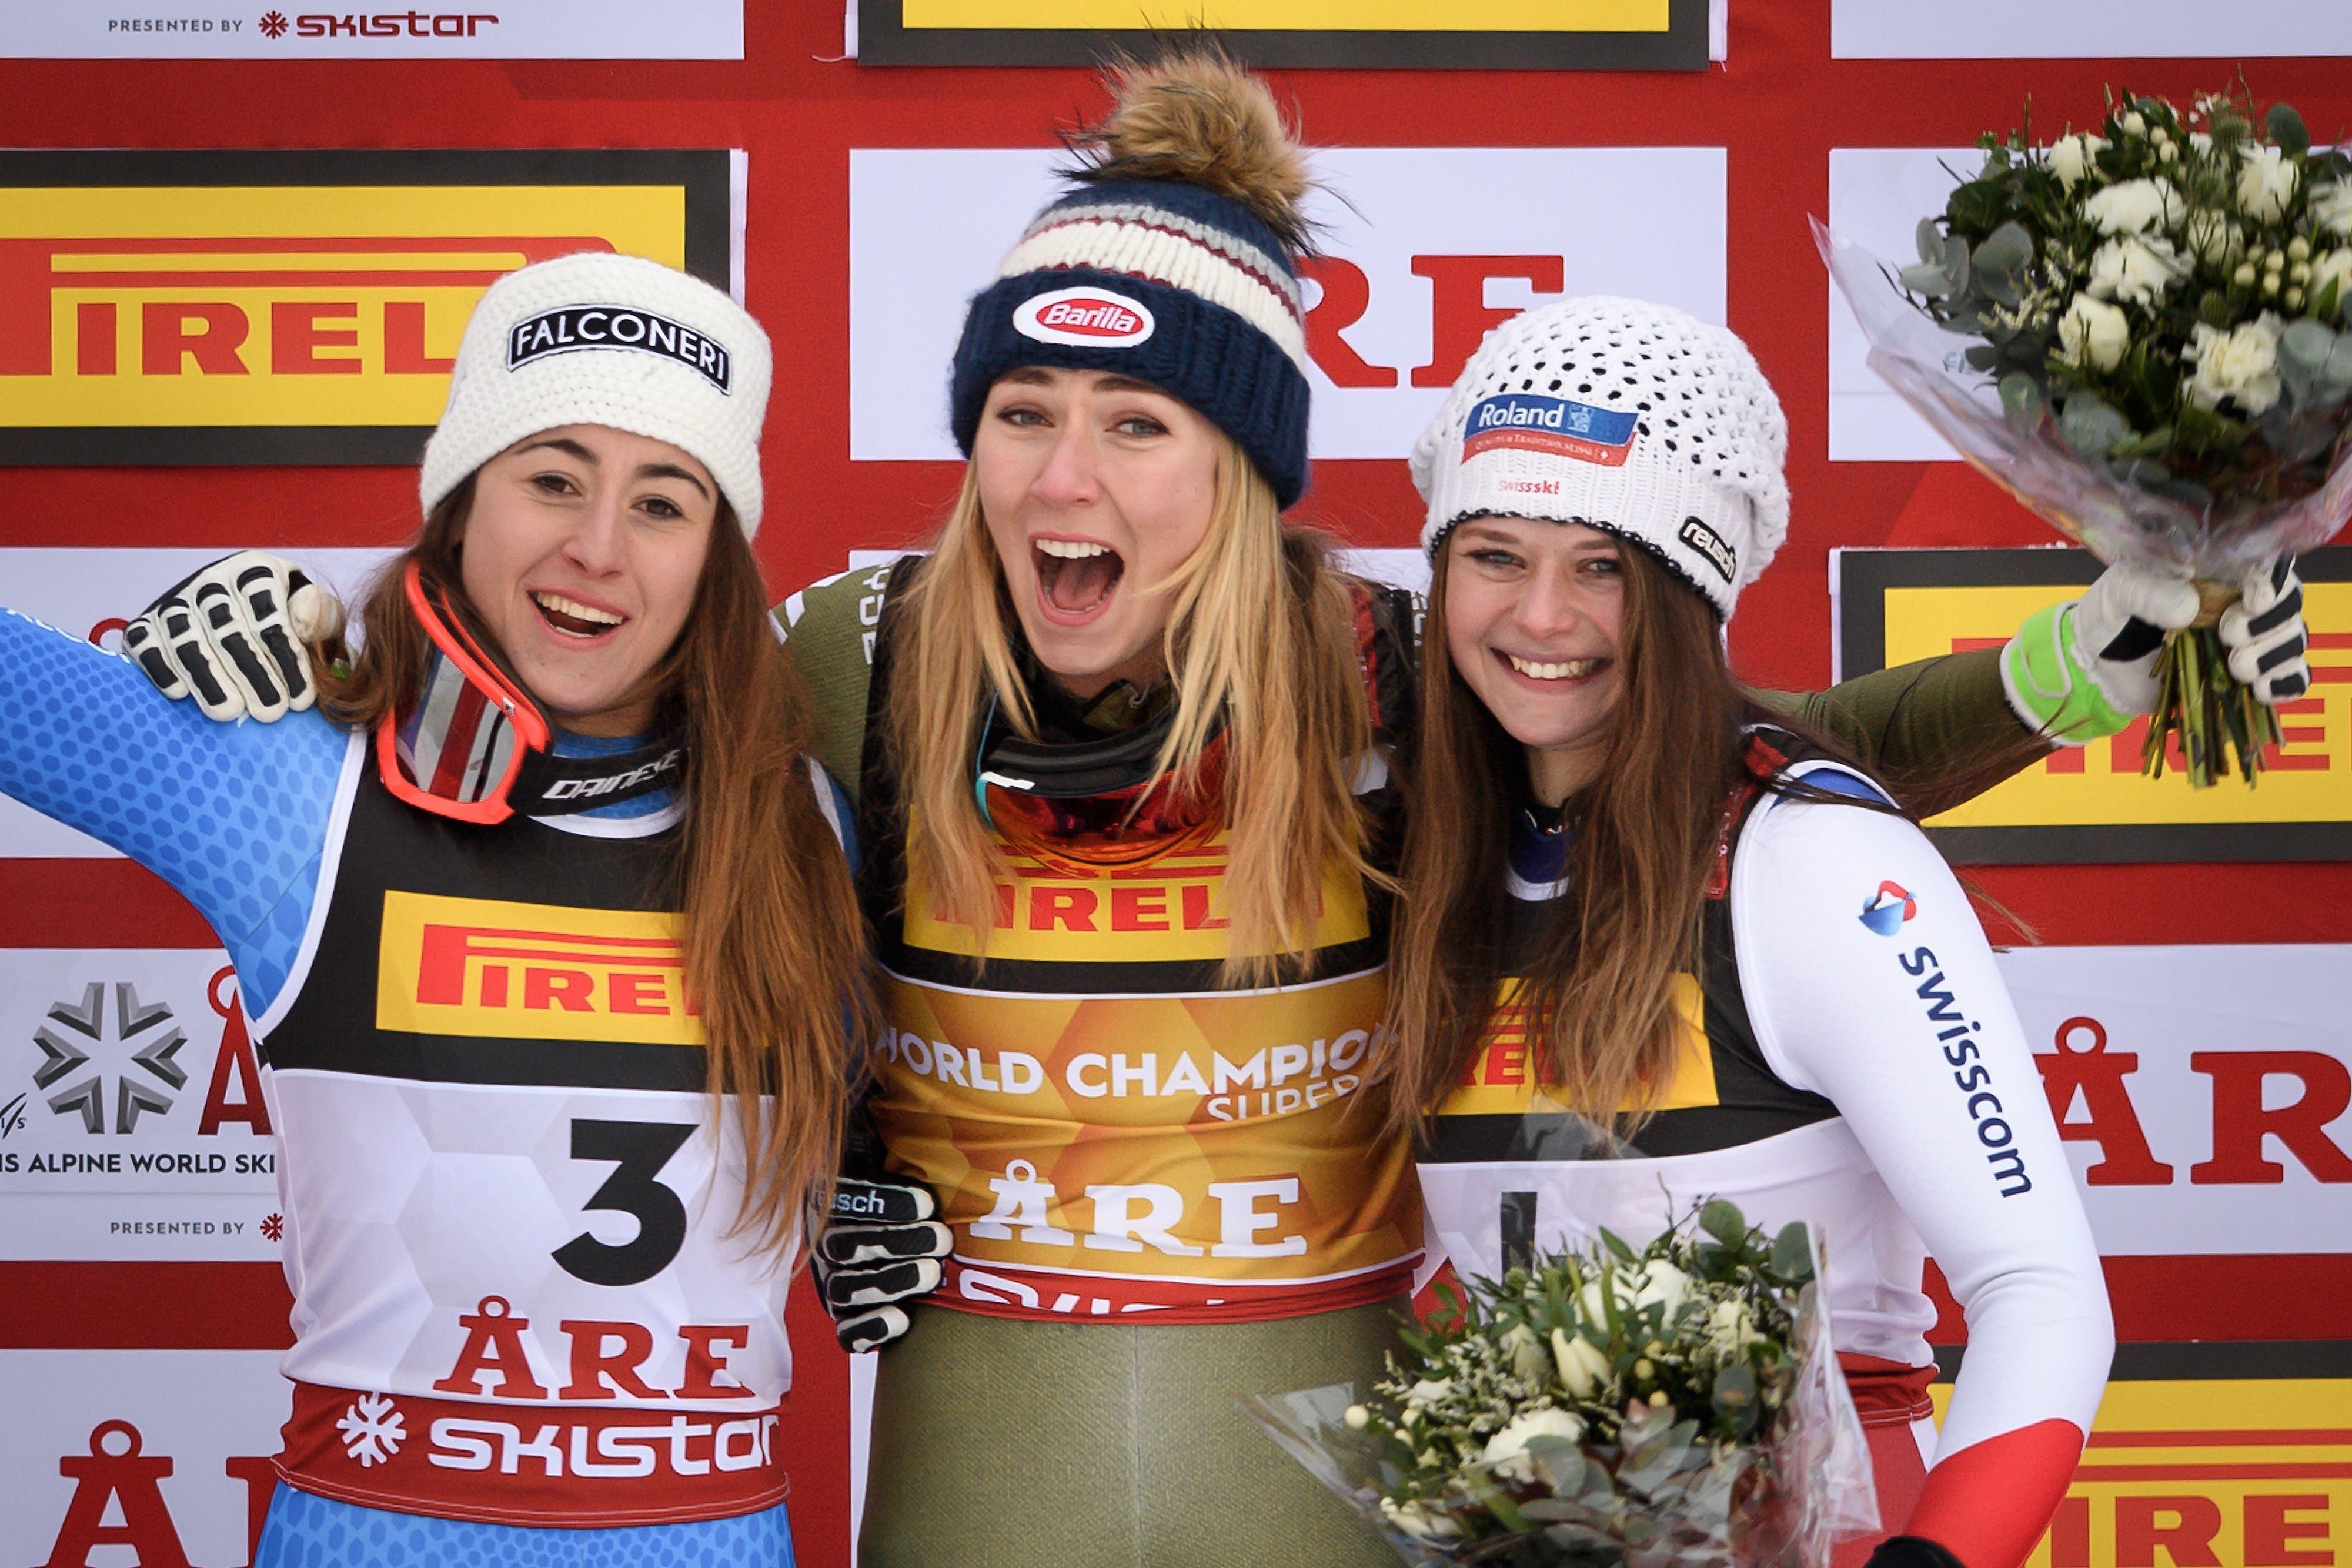 Silver medallist Italys Sofia Goggia, gold medallist US Mikaela Shiffrin and bronze medallist Switzerland's Corinne Suter celebrate during the flower ceremony of the women's Super G event of the 2019 FIS Alpine Ski World Championships at the National Aren